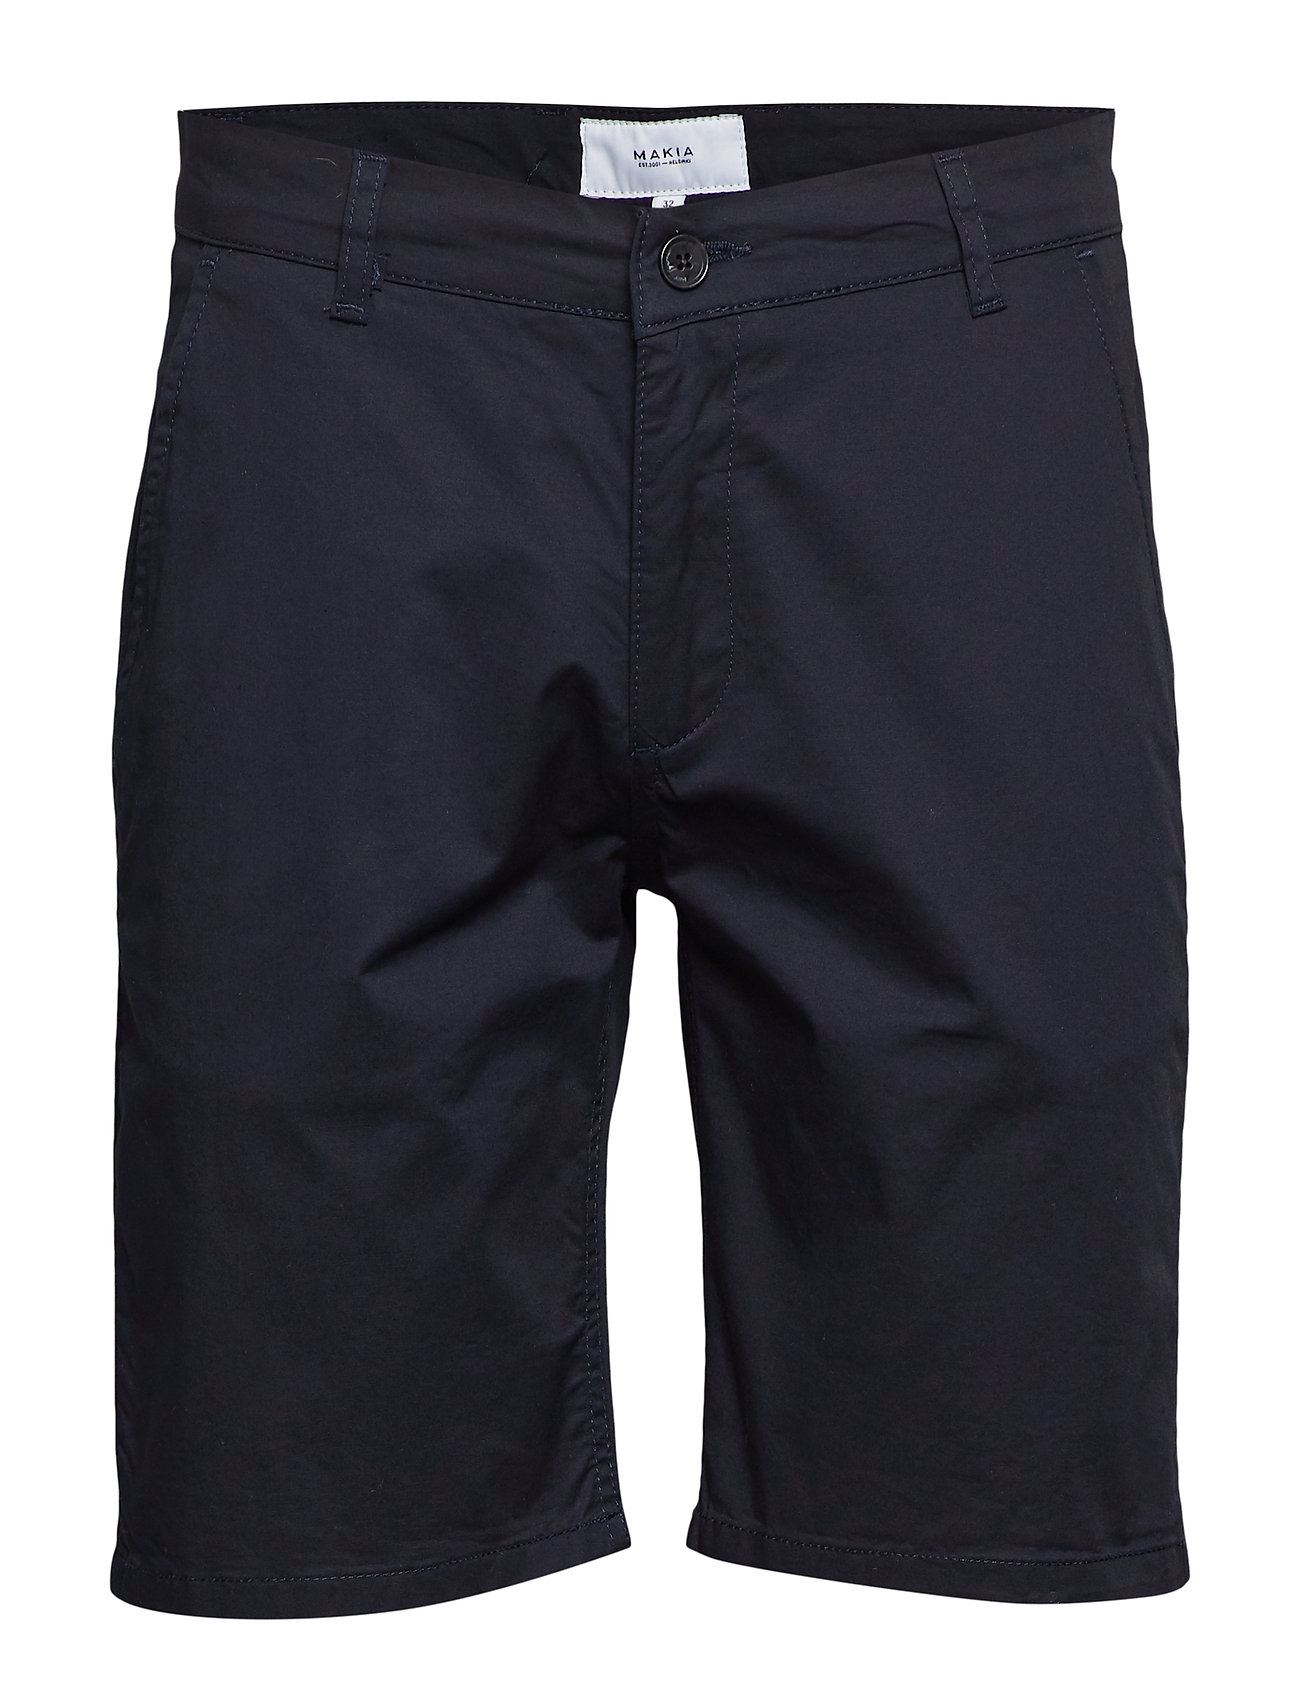 Makia CHINO SHORTS - DARK NAVY